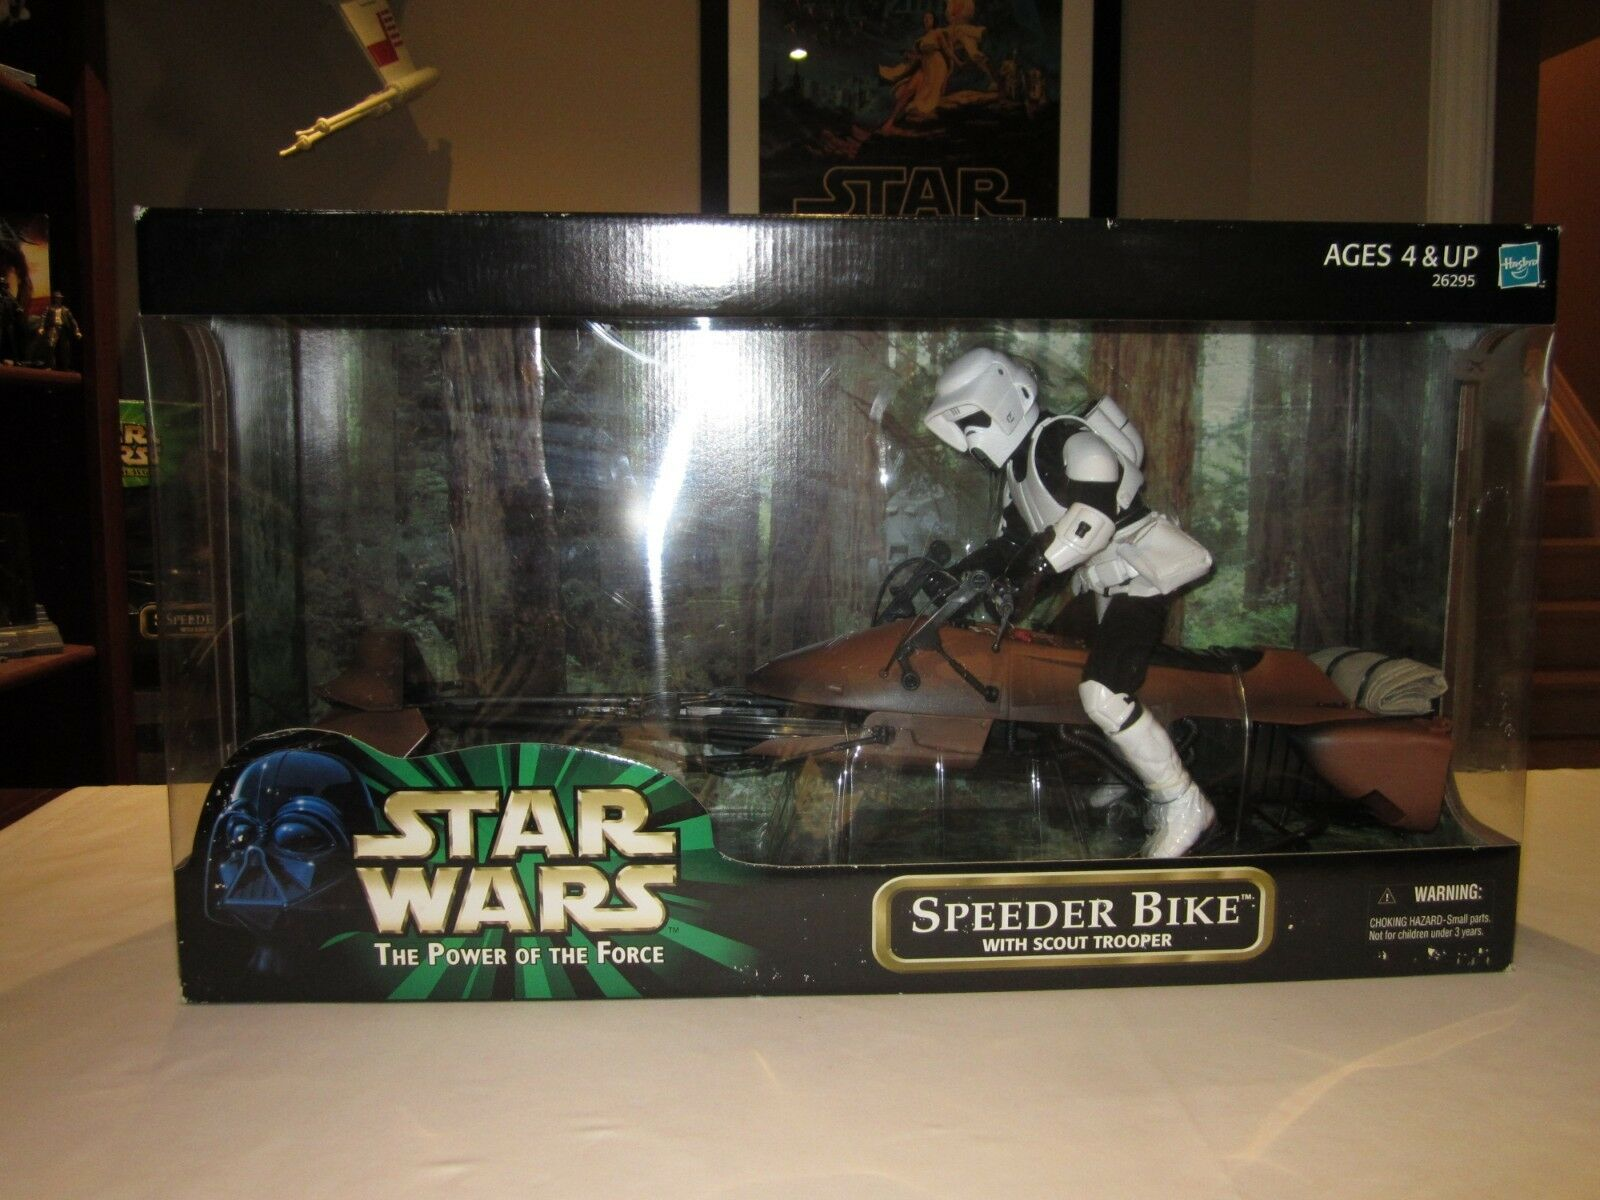 Star Wars POTF The Power of the Force Speeder Bike with Scout Trooper 12